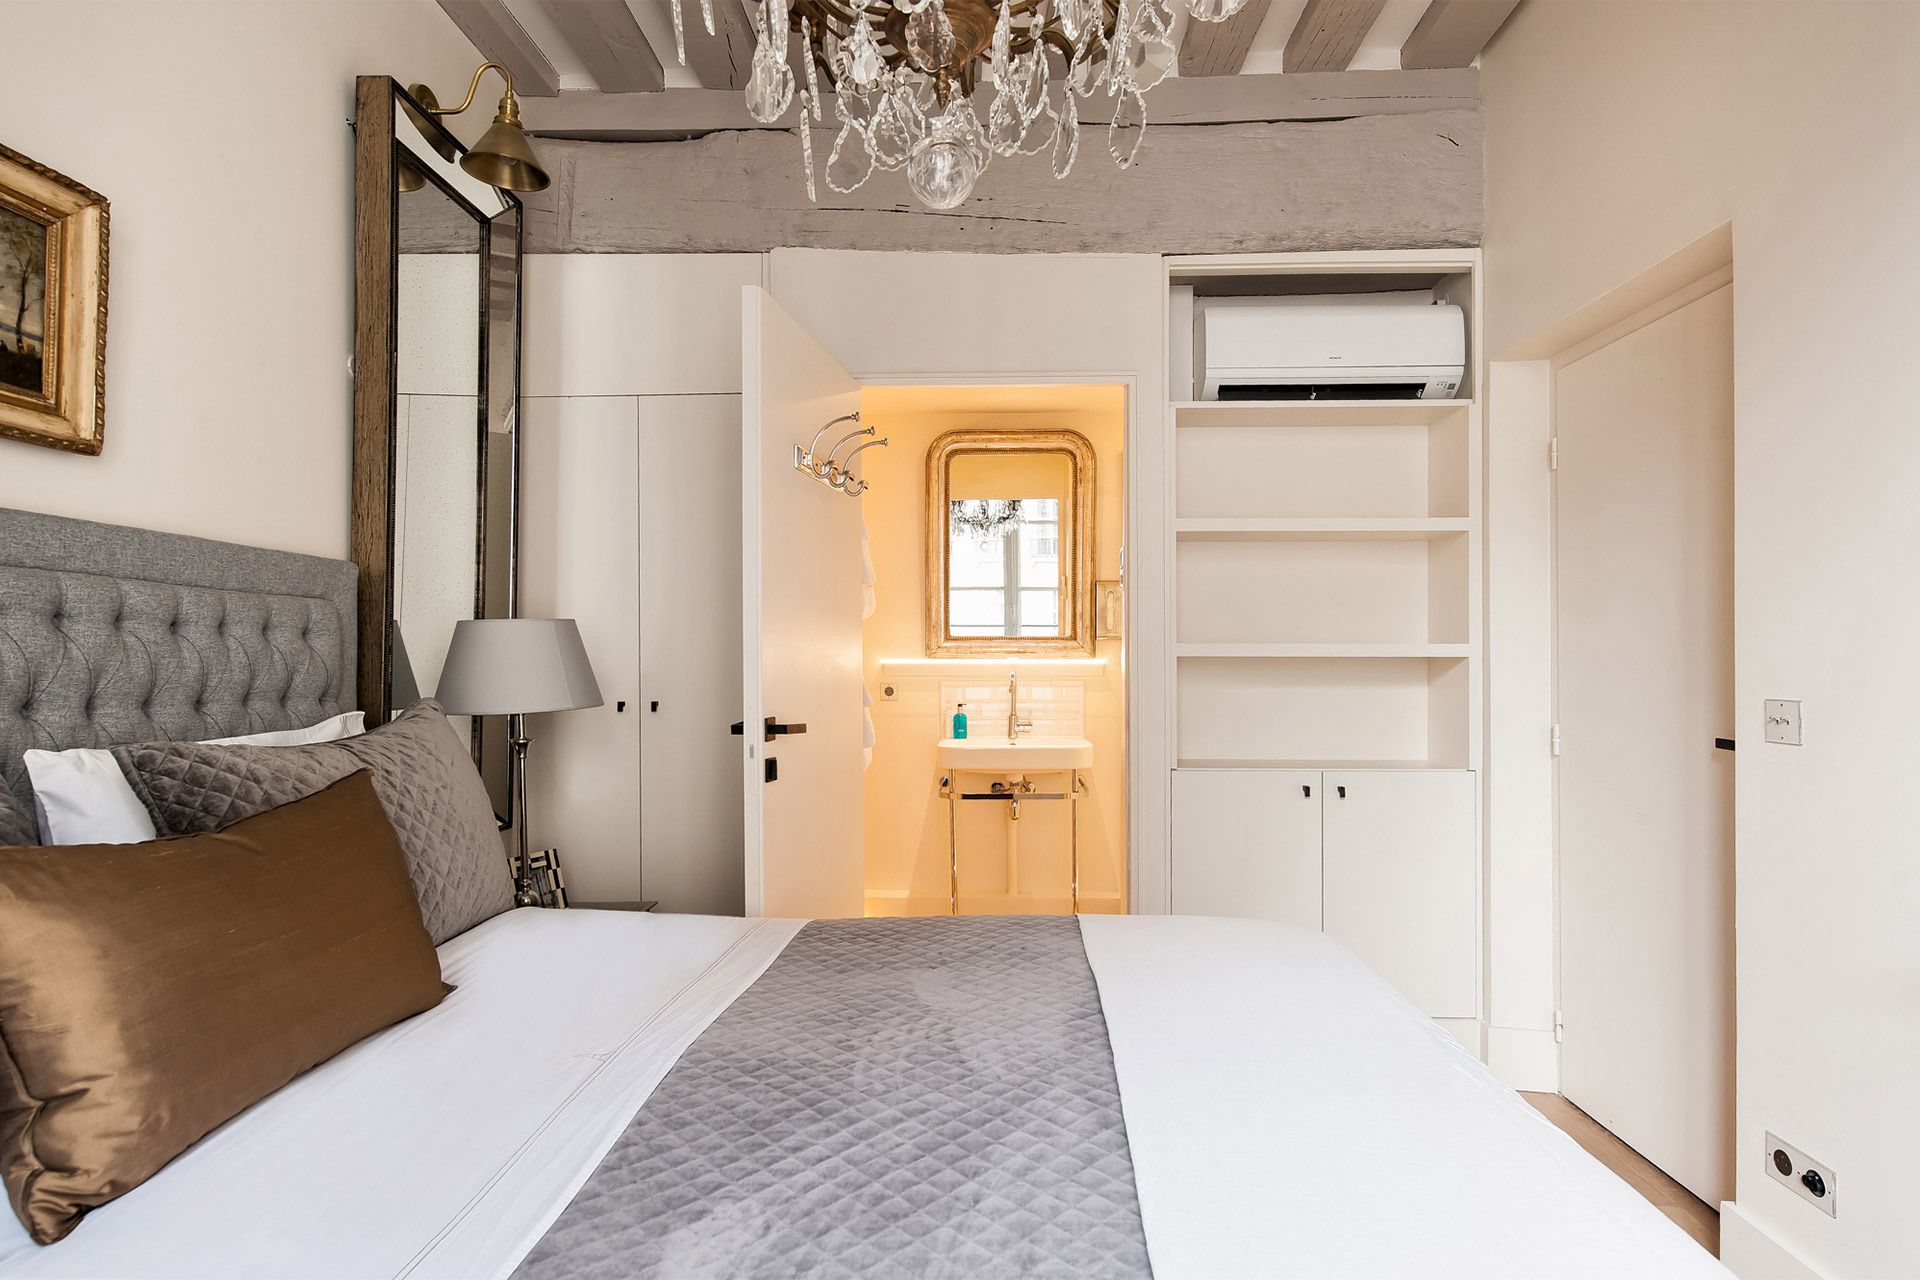 En suite bathroom and ample storage in the bedroom of the Castillon vacation rental offered by Paris Perfect